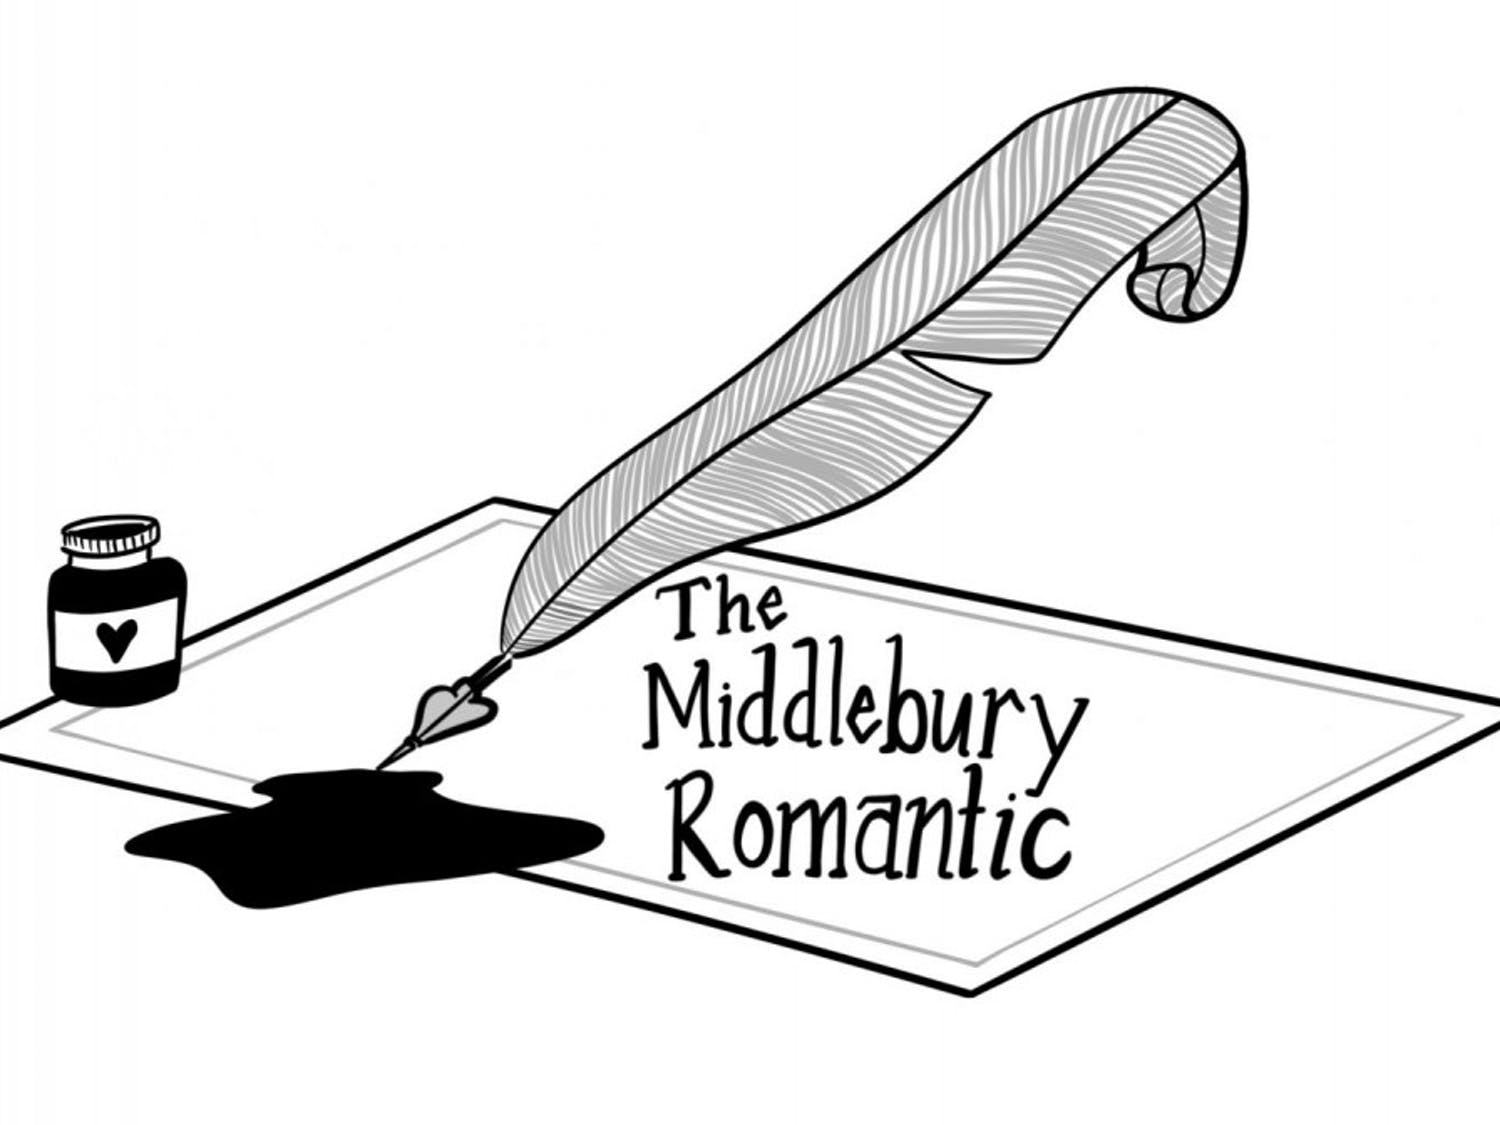 The-Middlebury-Romantic